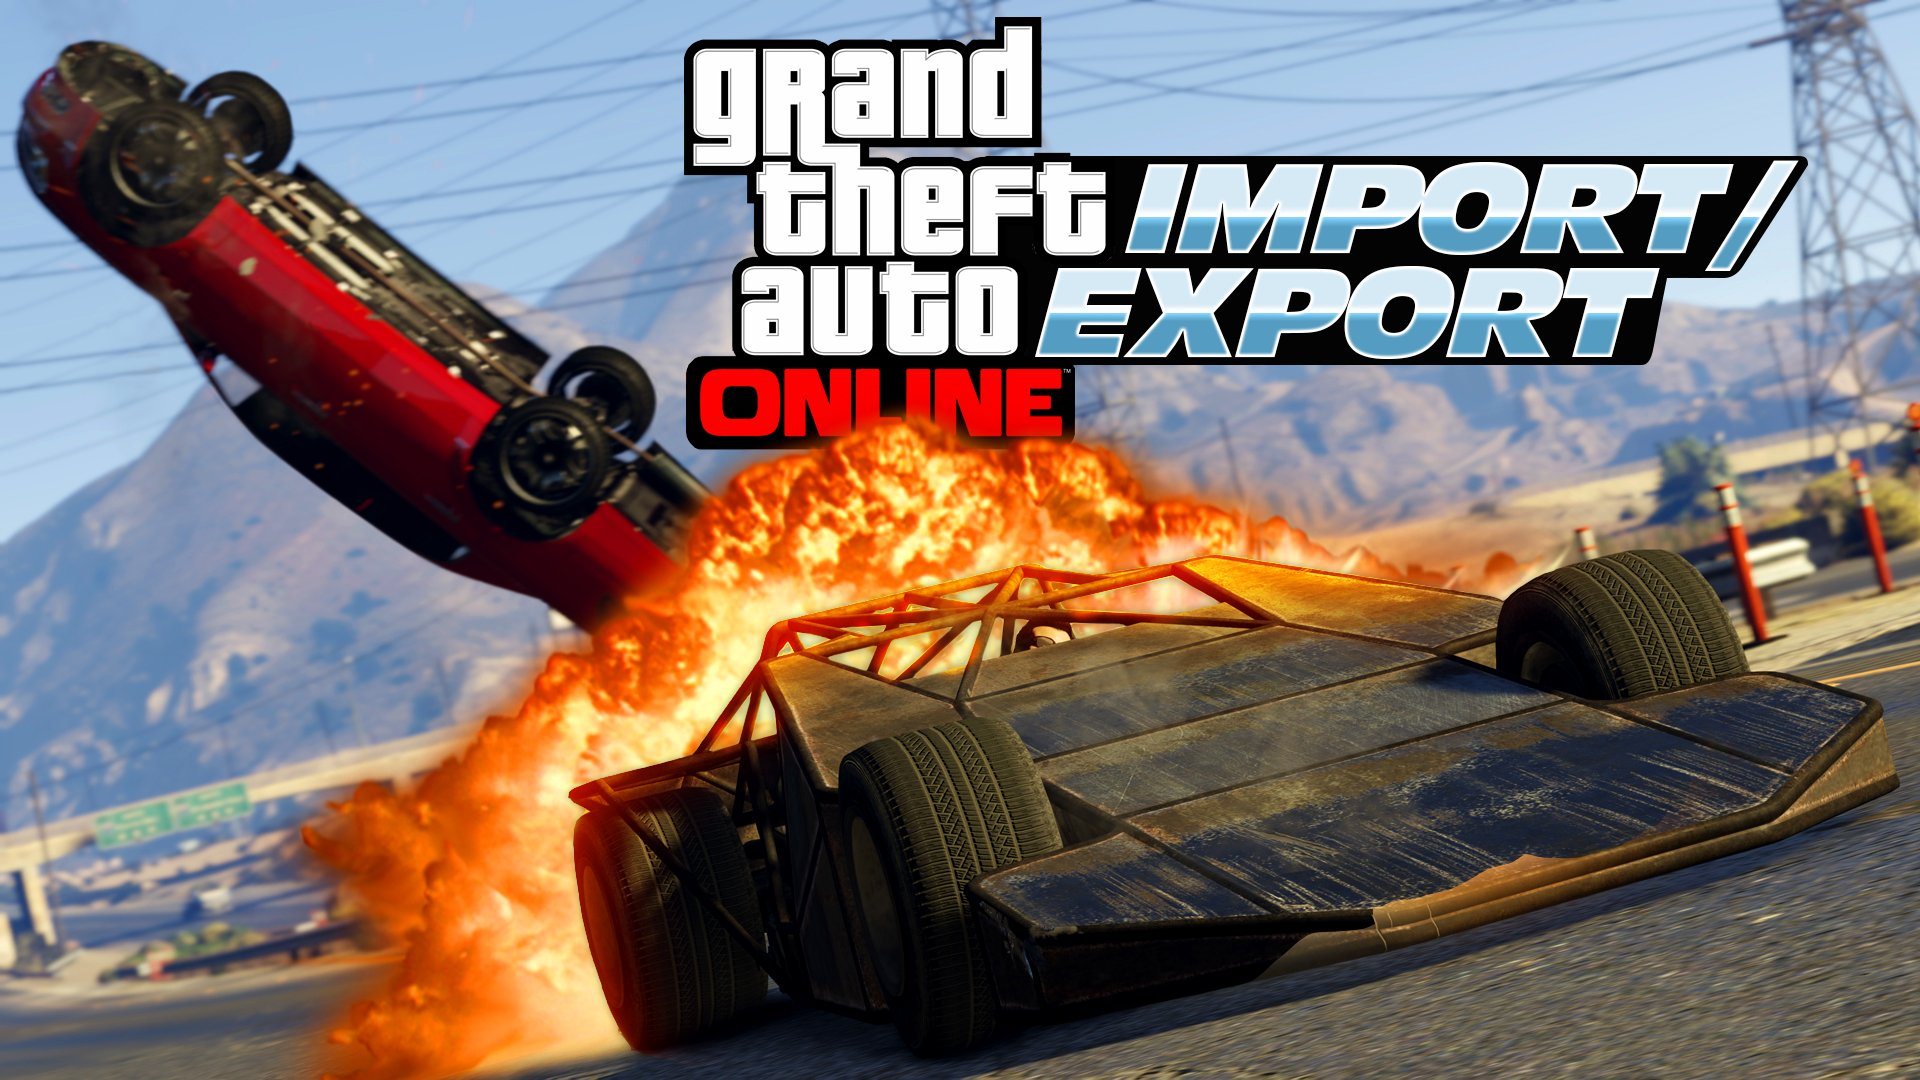 Download patch 1 0 1180 2 «Smuggler's Run» for GTA 5 Online